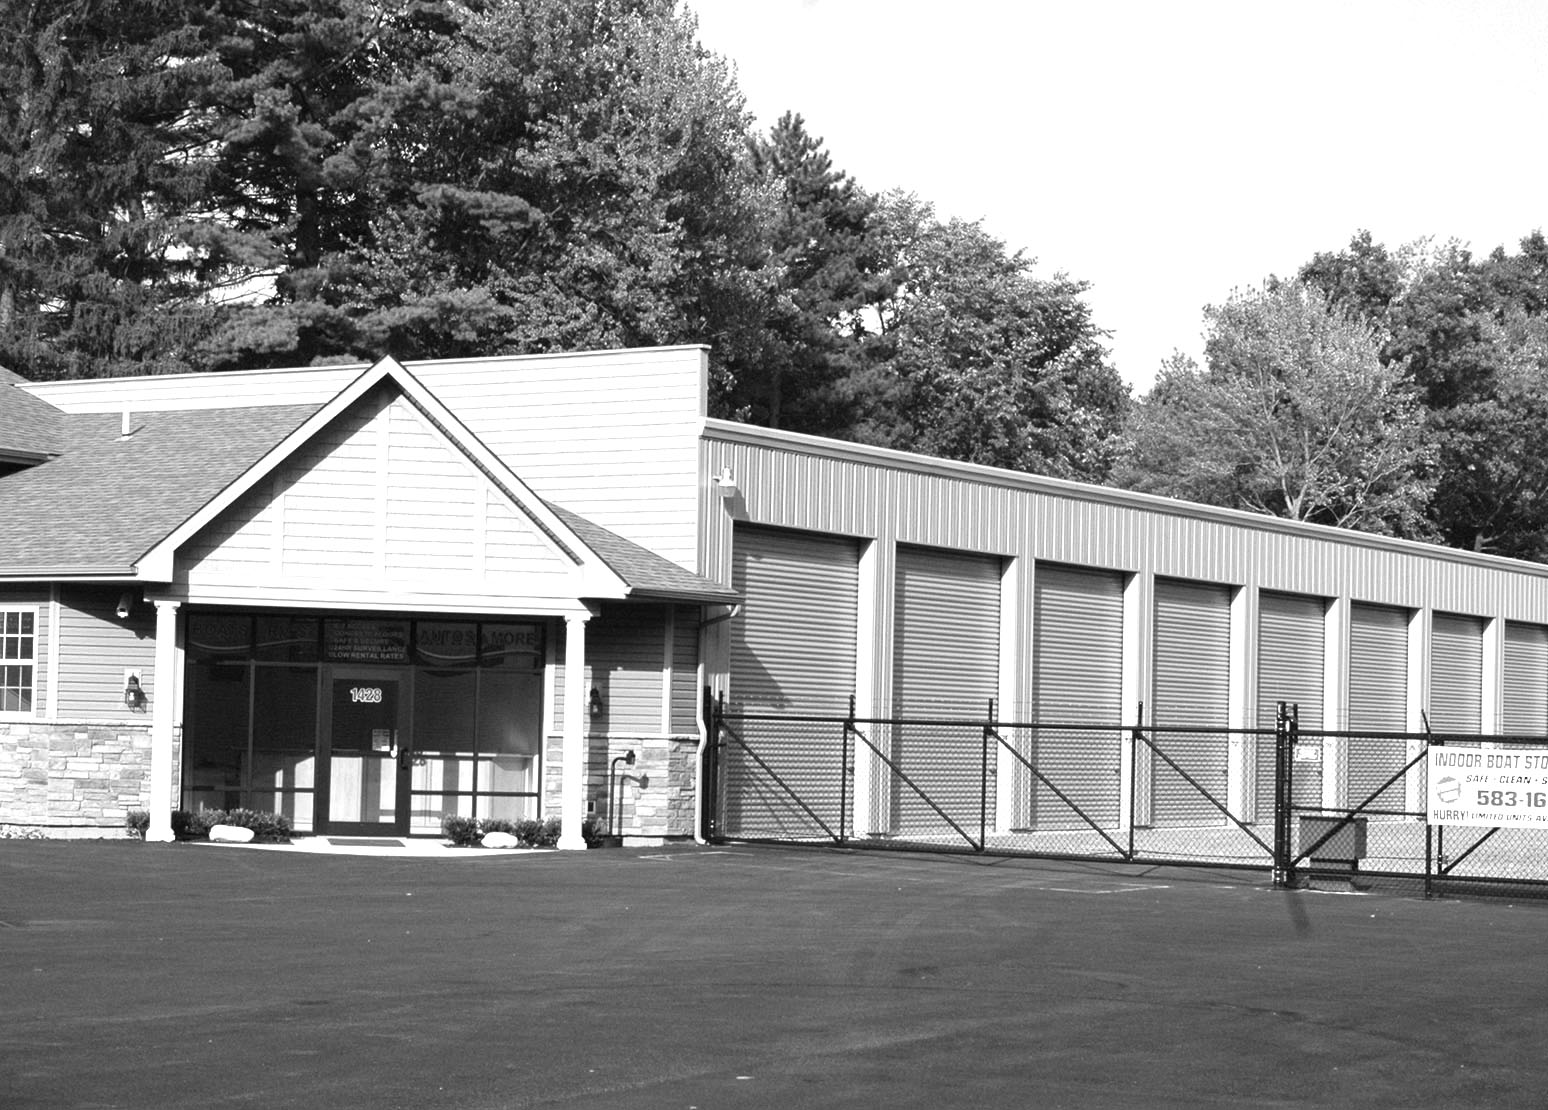 Concord Pools To Build Rv Boat Storage Facility Swimming Pool Store Near Exit 18 Saratoga Business Journal